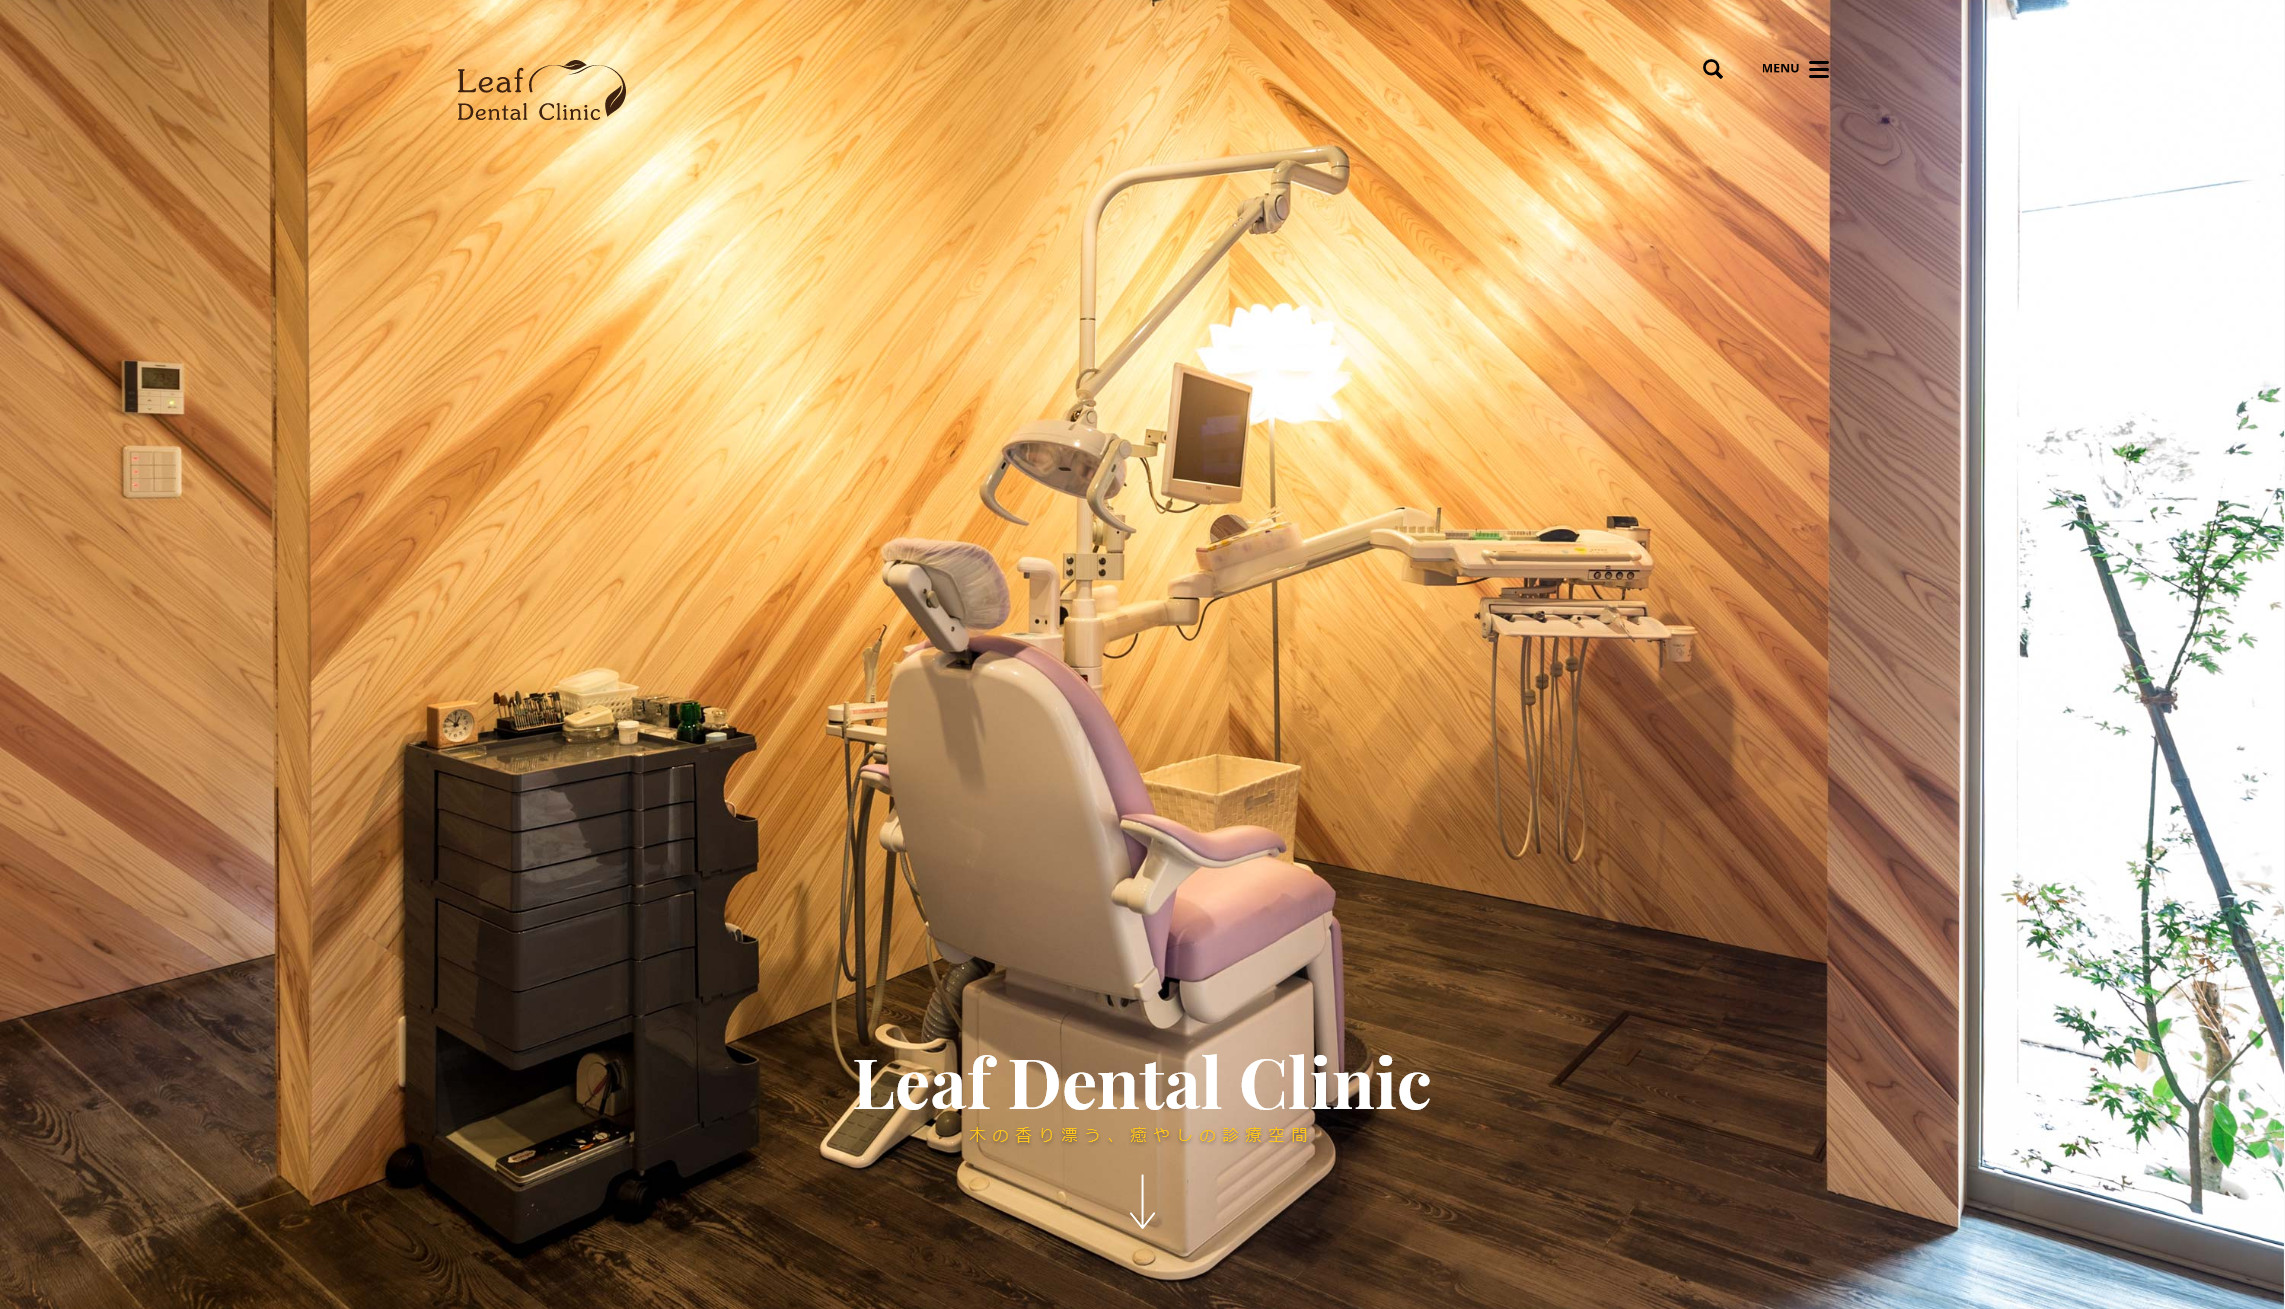 LeafDentalClinic様ホームページ